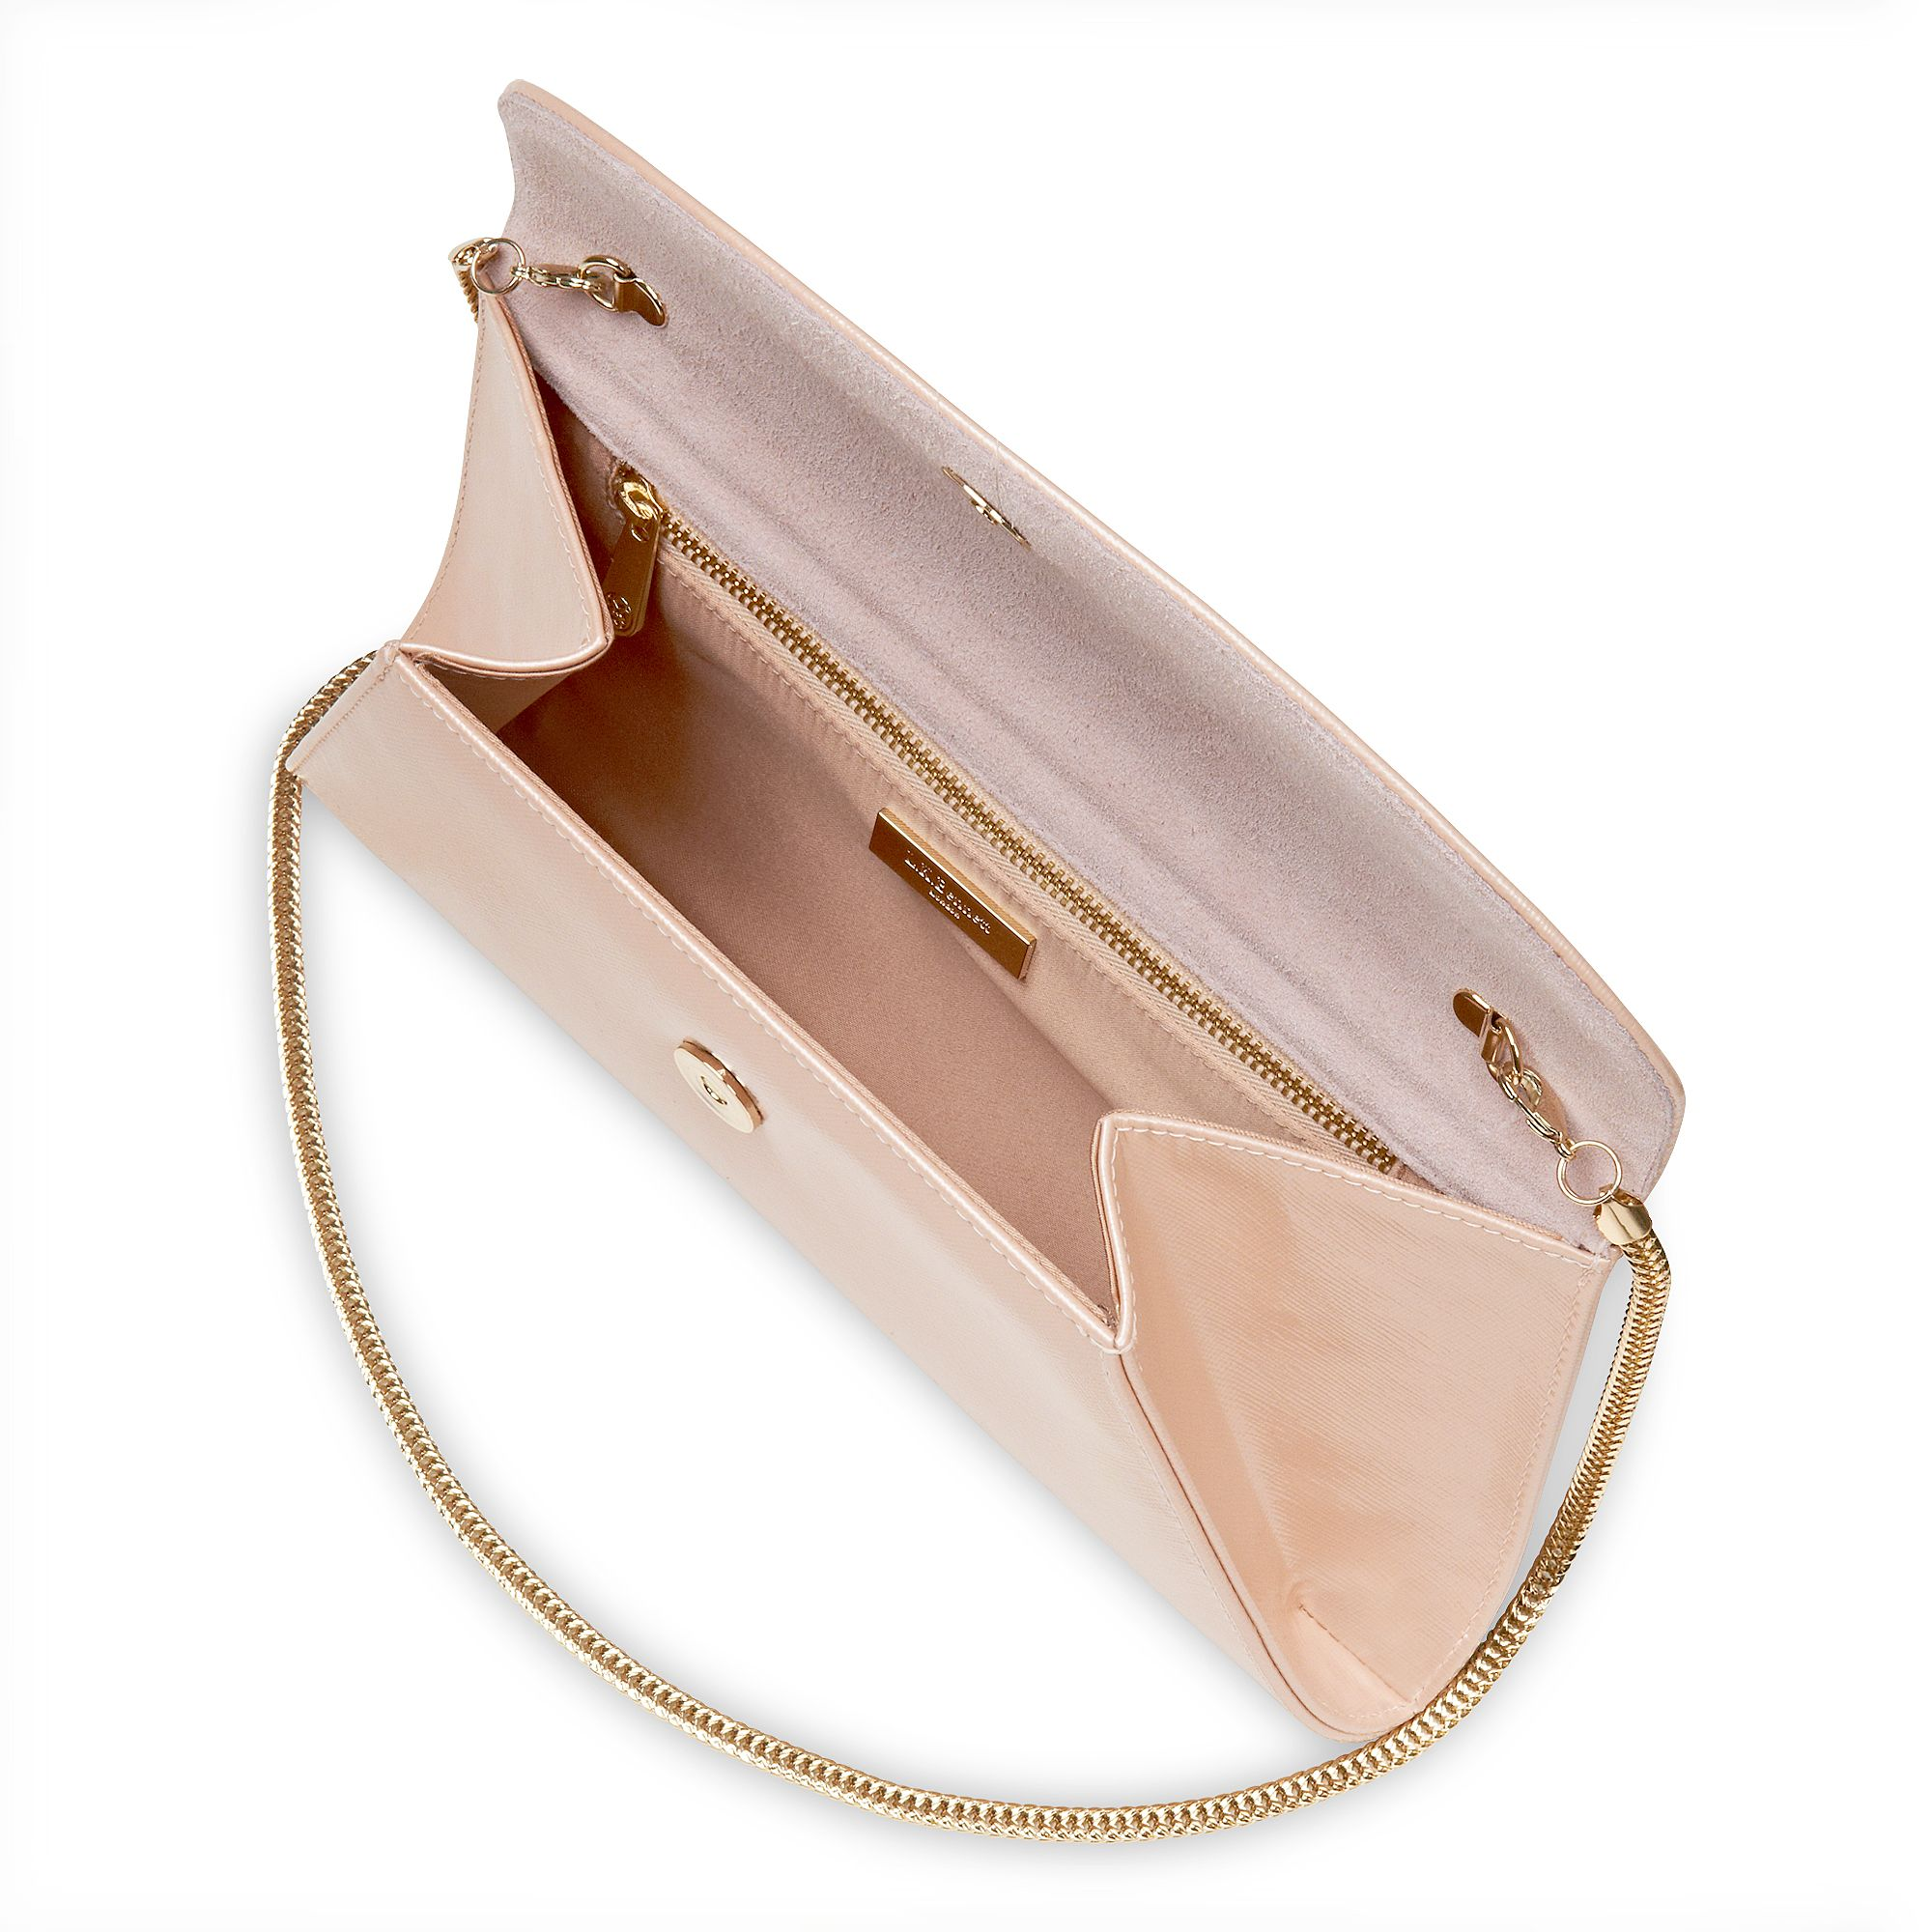 Flo patent leather envelope clutch